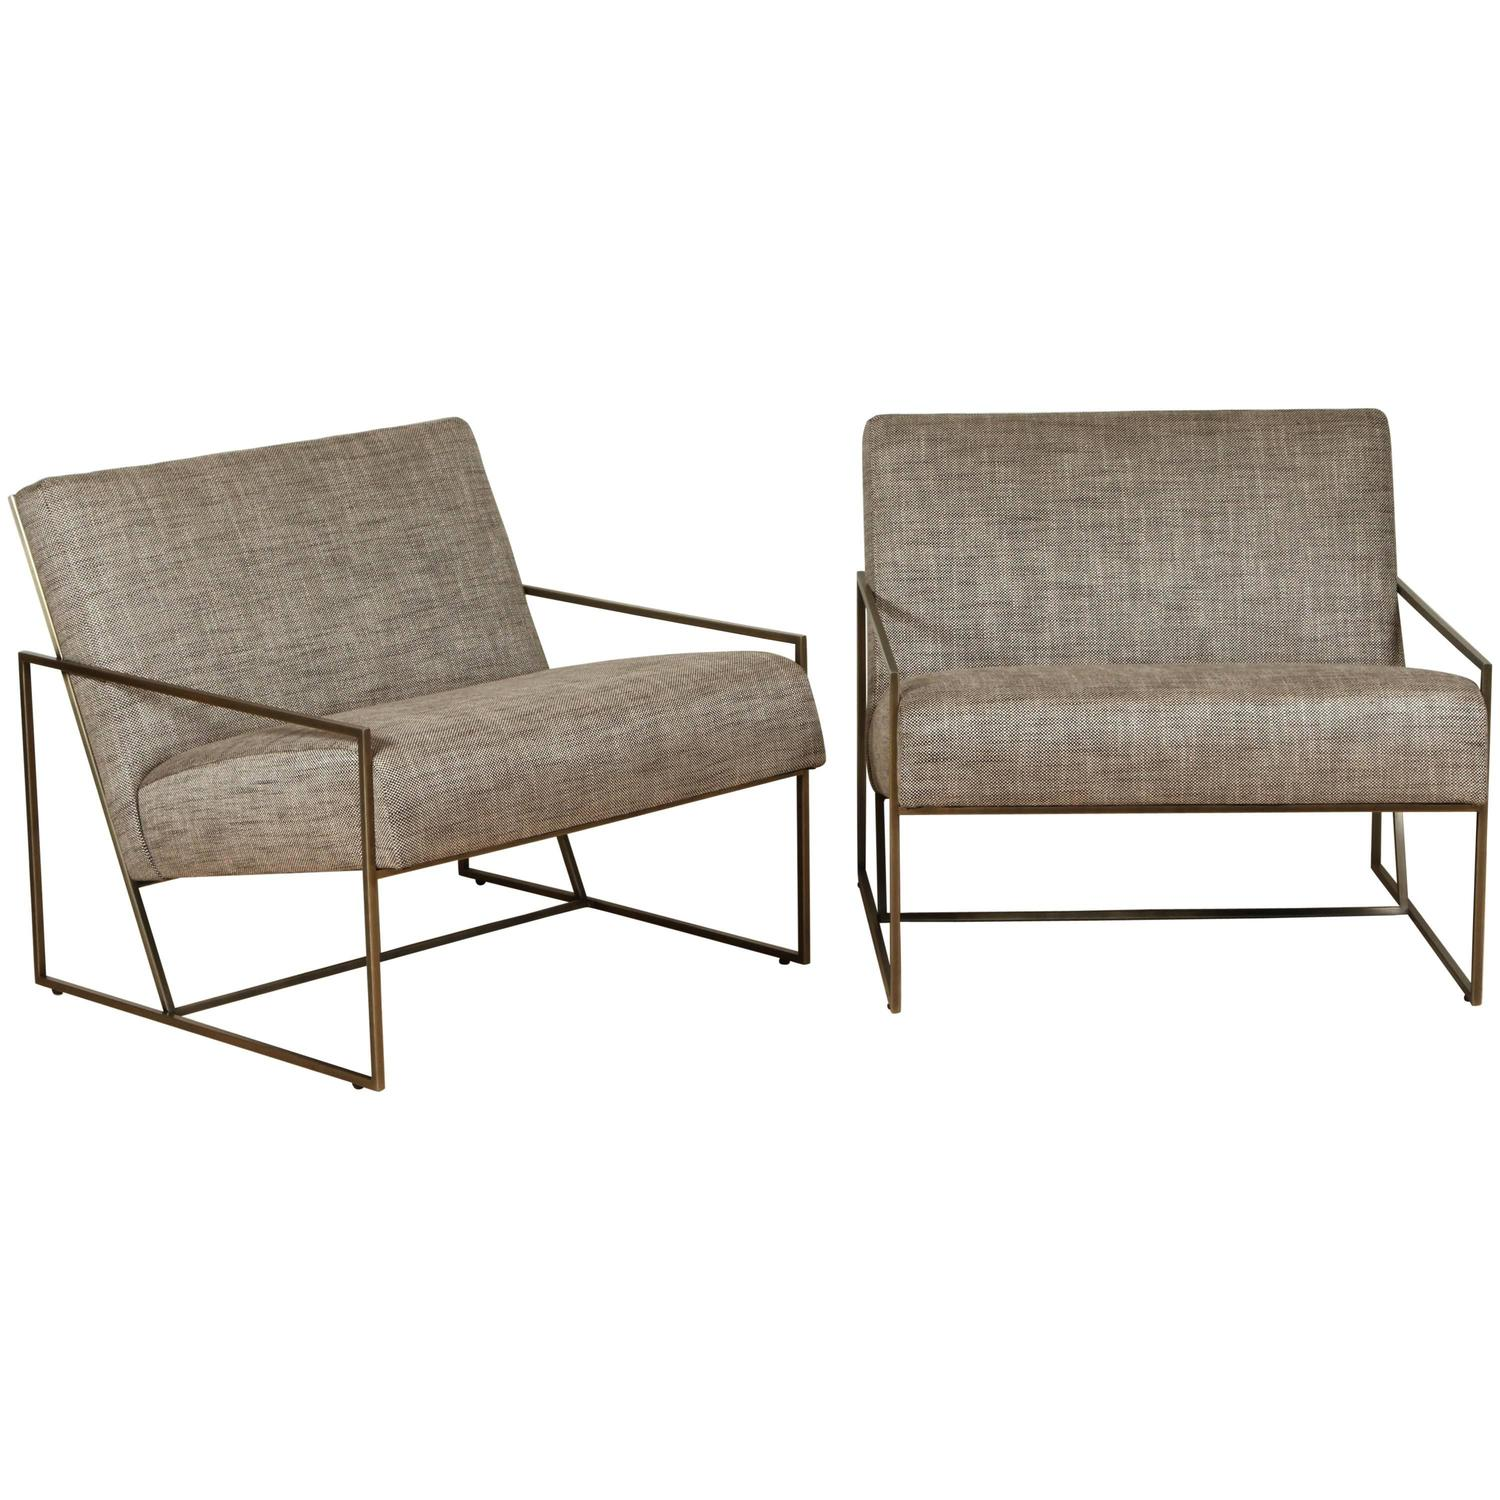 Thin Frame Lounge Chairs By Lawson Fenning For Sale At 1stdibs